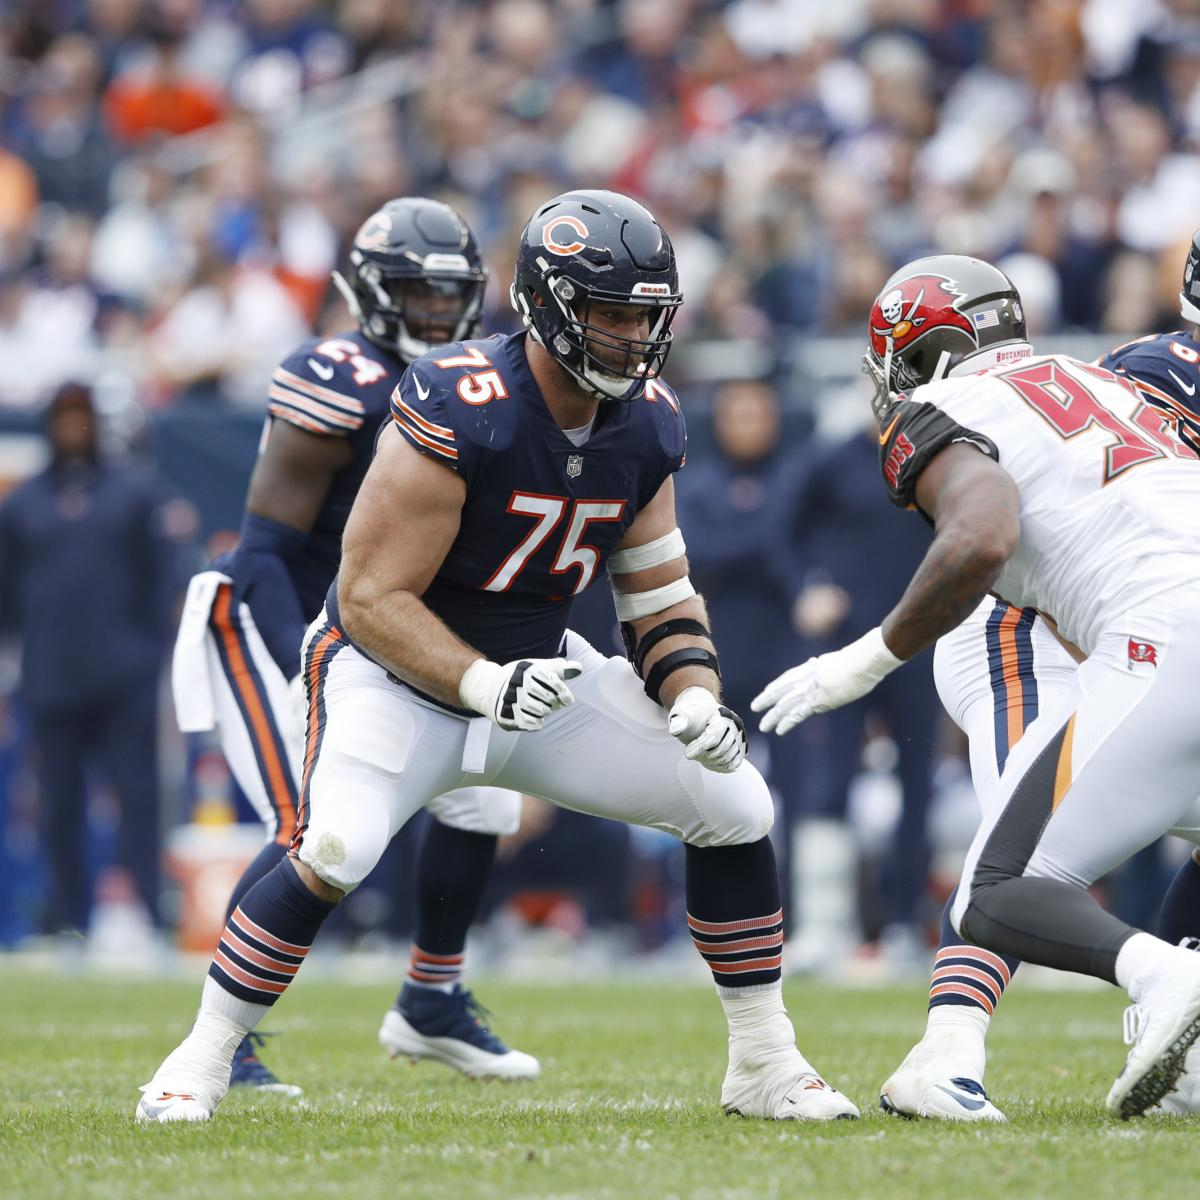 Report: Kyle Long to Miss 6-8 Weeks After Suffering Foot Injury vs. Jets